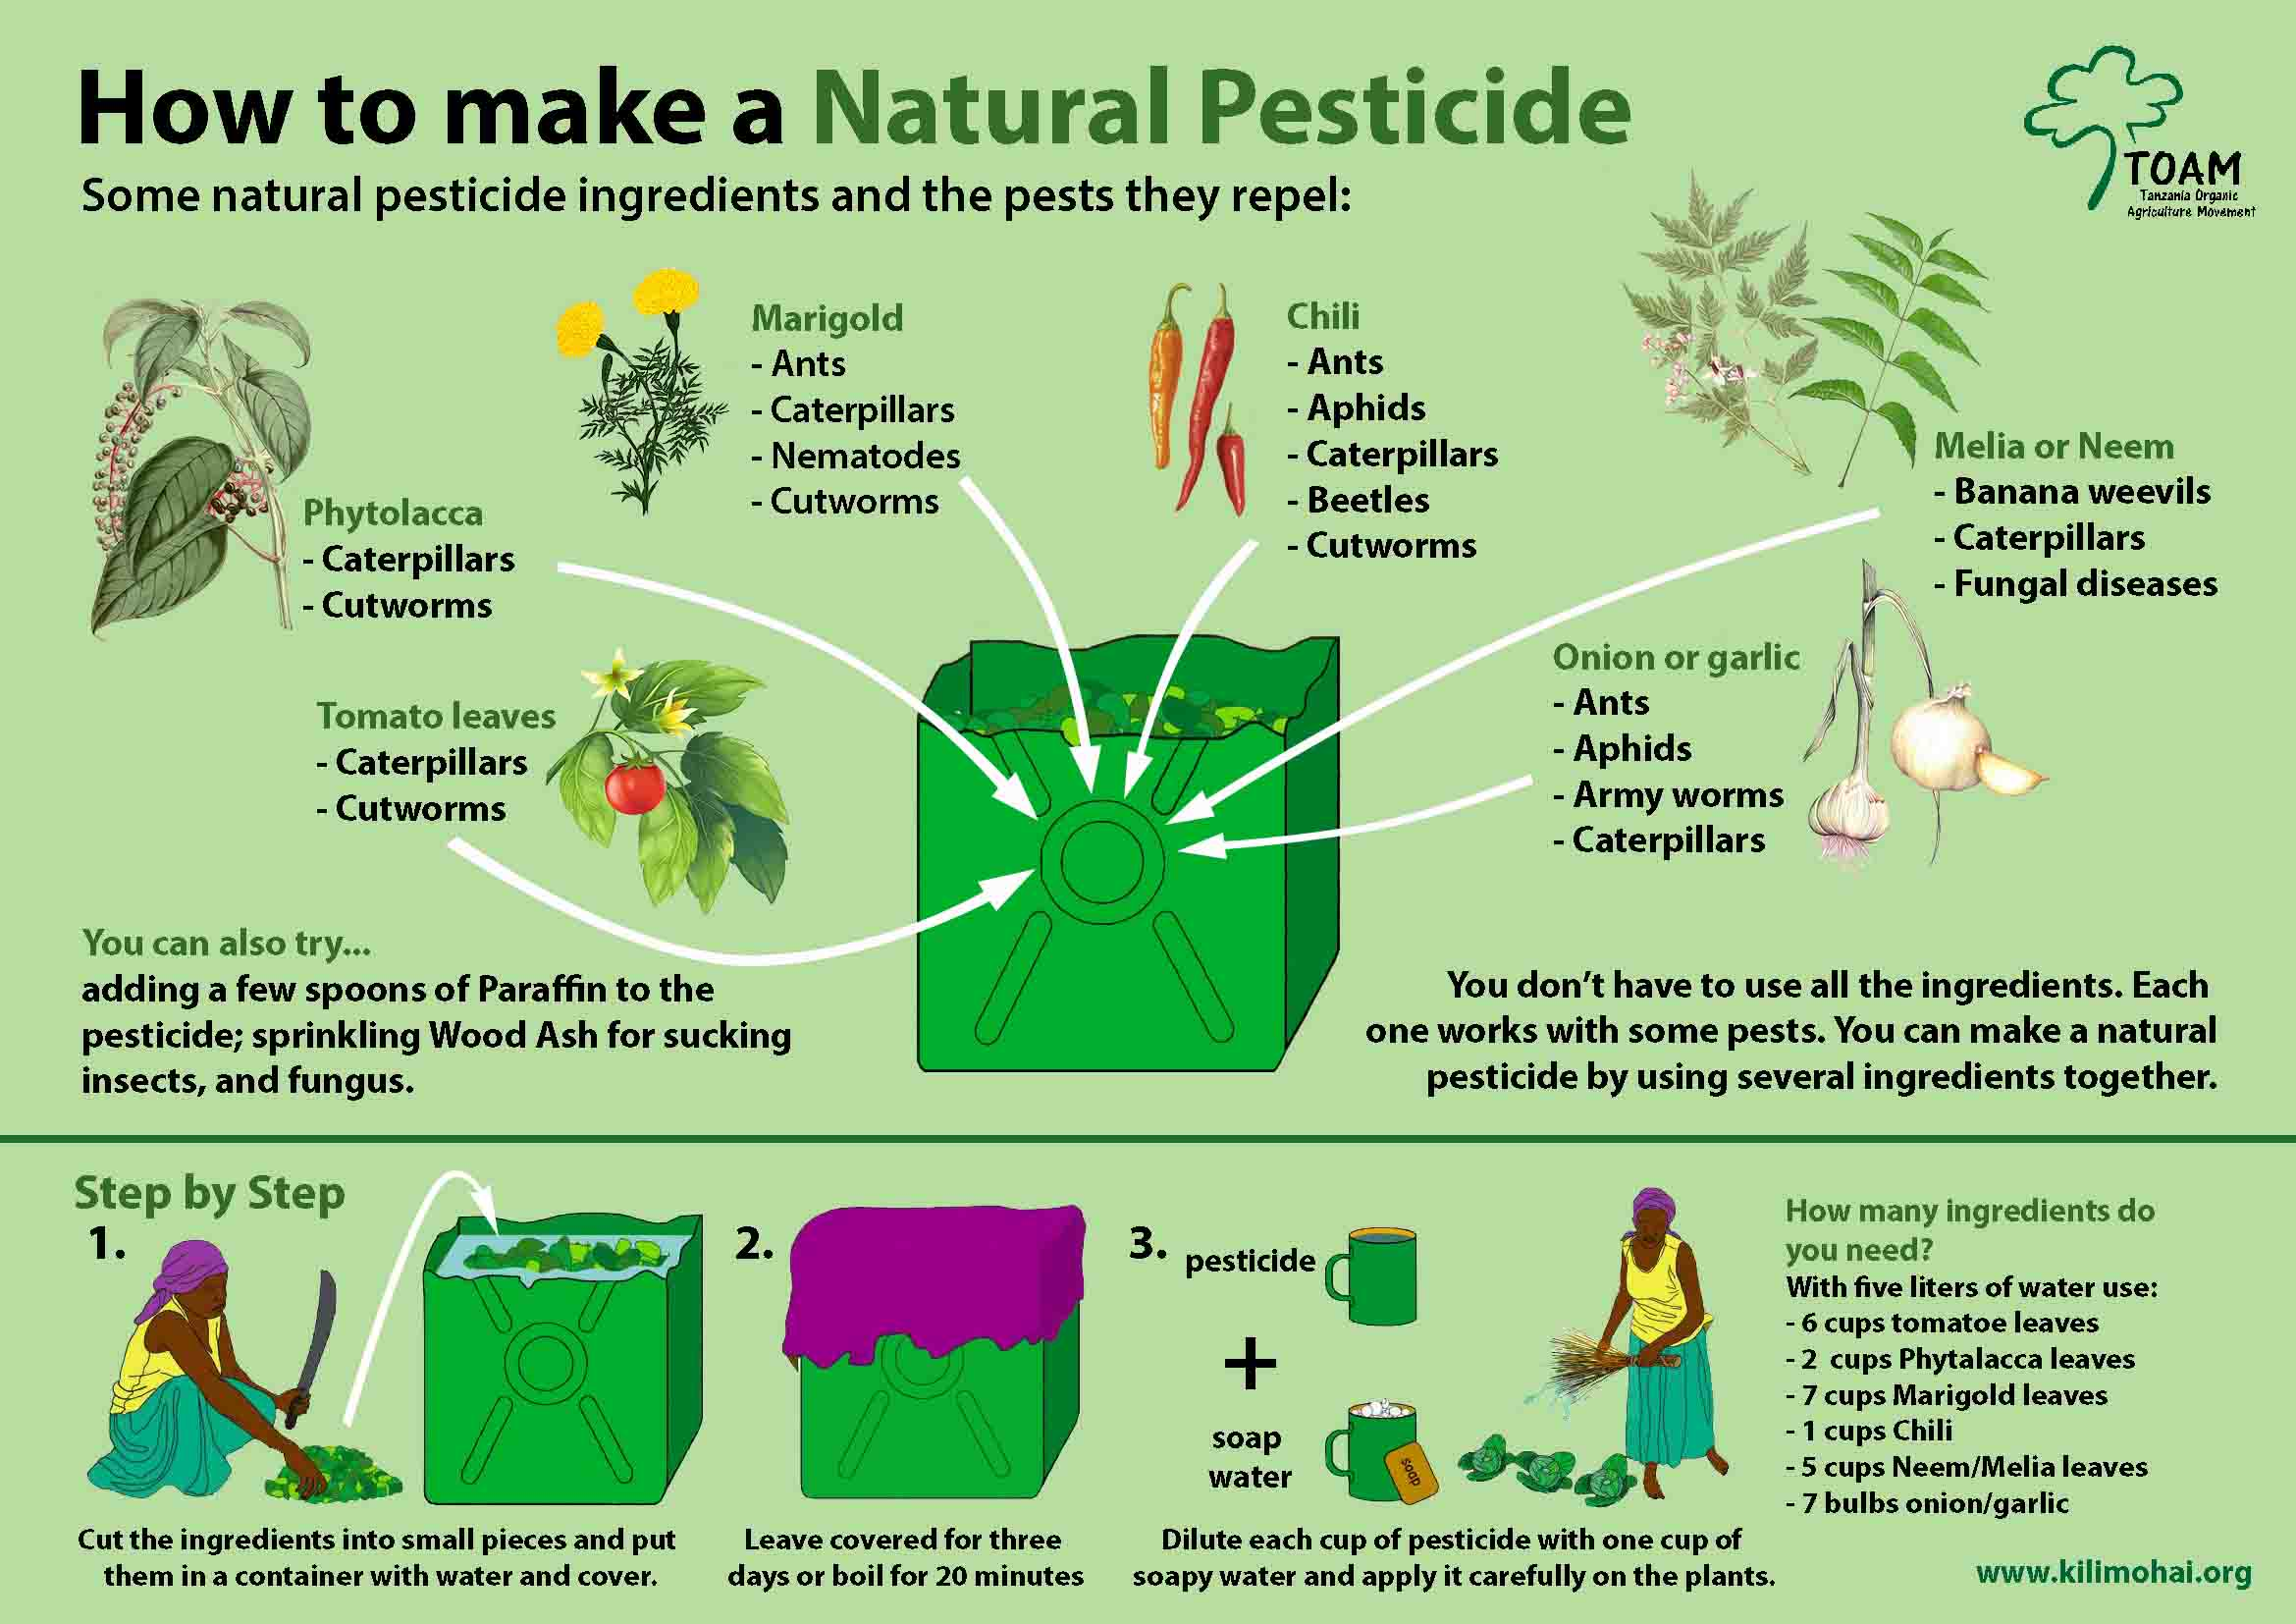 pesticide kill and radish extract Onion: an organic fungicides abstract  but also aneffective fungicide which can kill/ control  « investigatory project pesticide from radish extract.